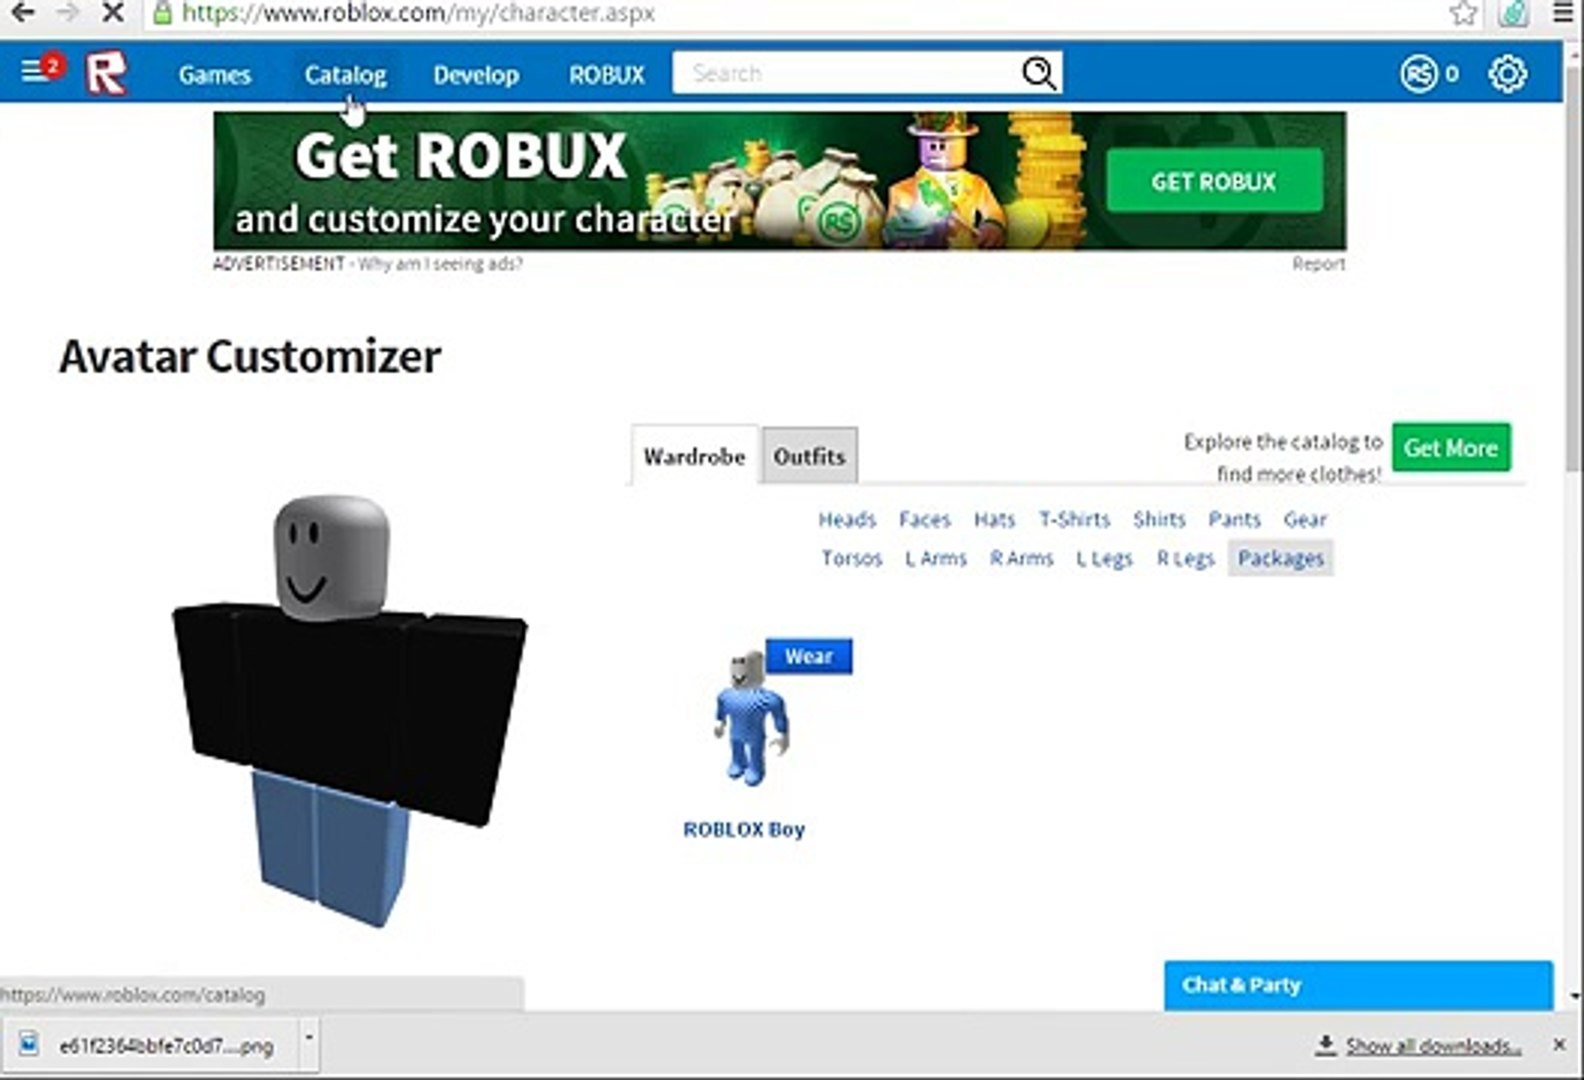 How To Look Cool In Roblox Without Robux On Ipad - How To Look Good On Roblox Without Robux Robux By Watching